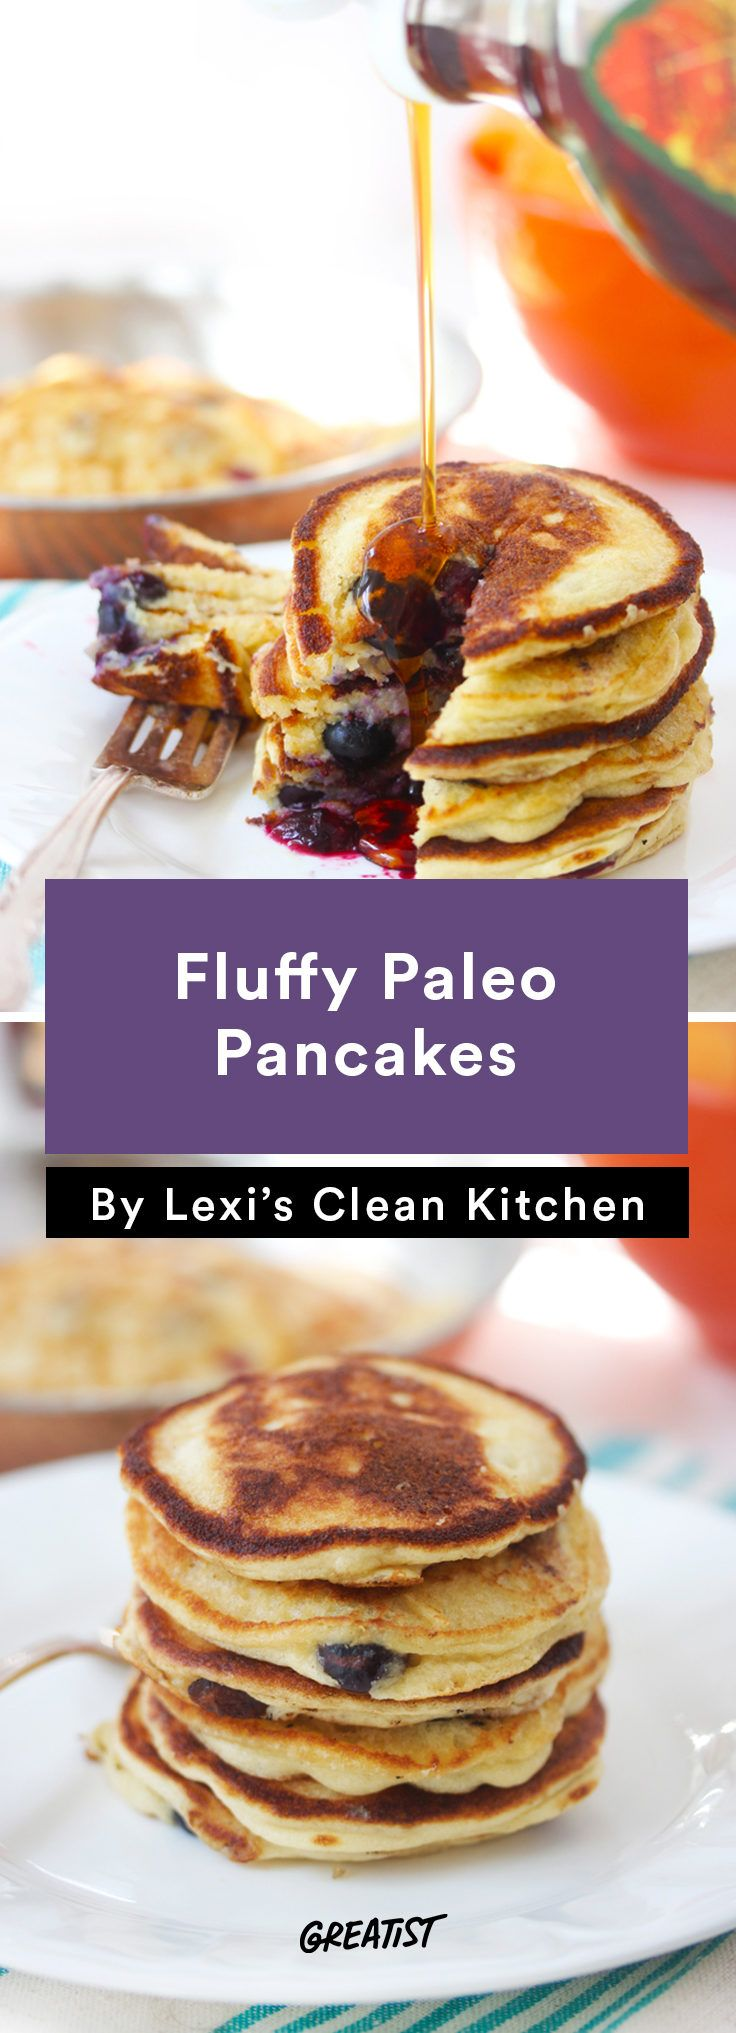 7 Clean Paleo Breakfasts to Brighten Your Morning